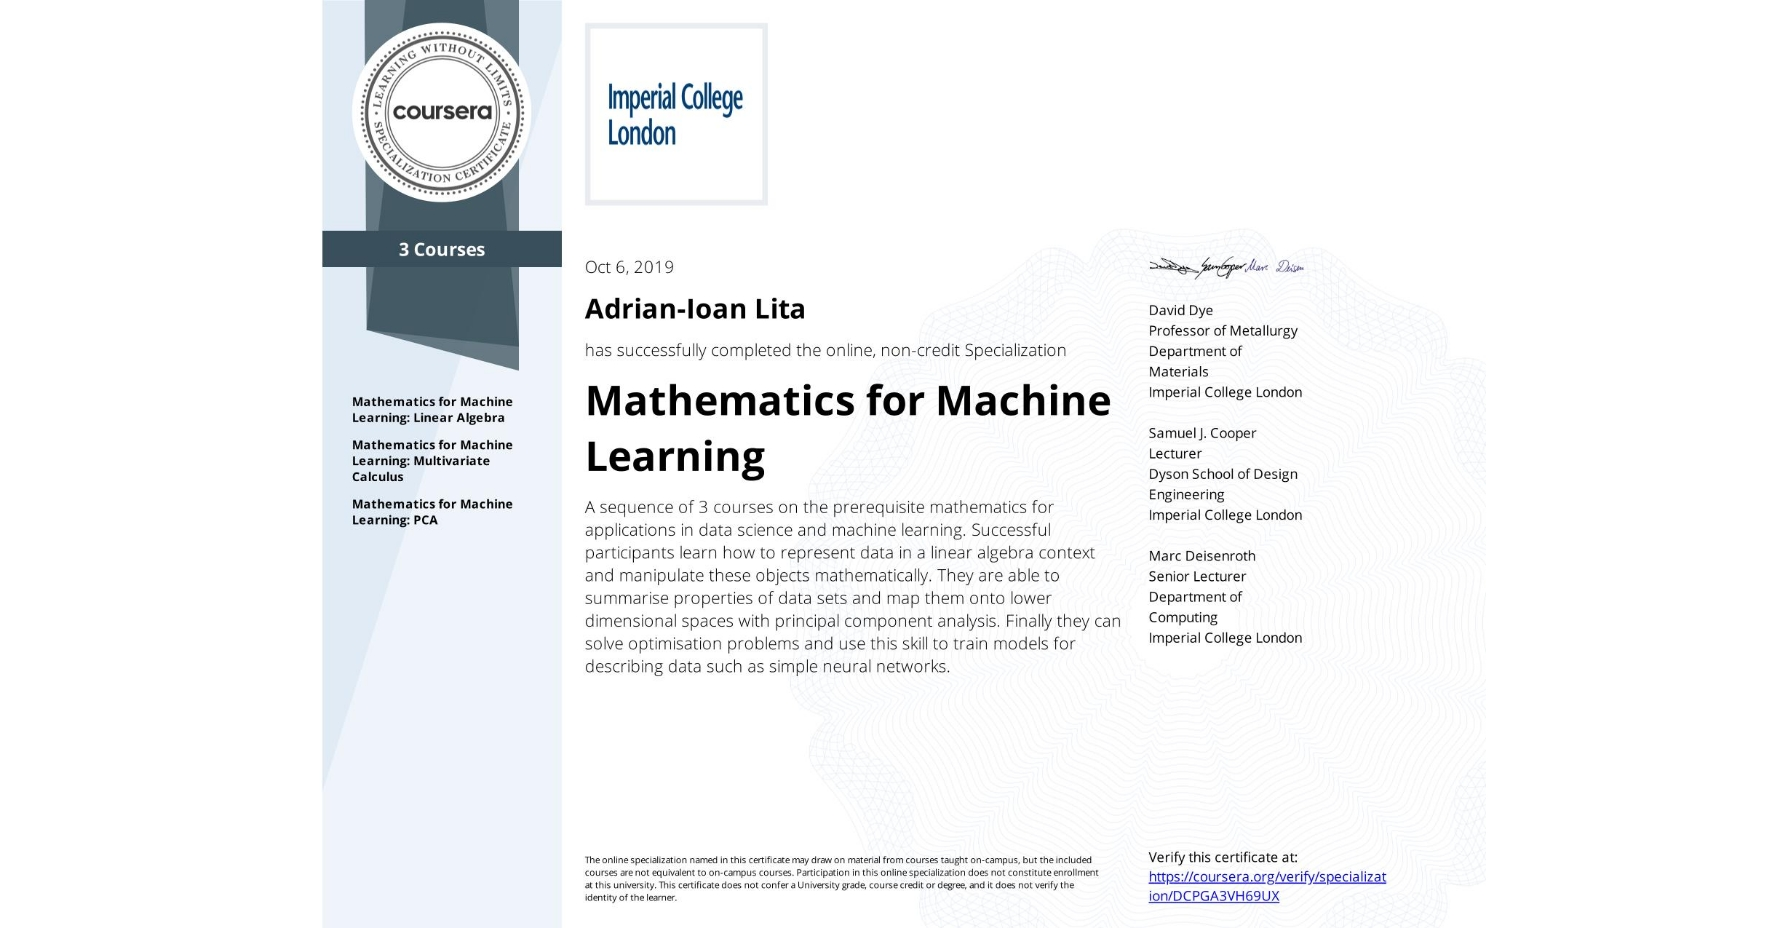 View certificate for Adrian-Ioan Lita, Mathematics for Machine Learning, offered through Coursera. A sequence of 3 courses on the prerequisite mathematics for applications in data science and machine learning.   Successful participants learn how to represent data in a linear algebra context and manipulate these objects mathematically. They are able to summarise properties of data sets and map them onto lower dimensional spaces with principal component analysis. Finally they can solve optimisation problems and use this skill to train models for describing data such as simple neural networks.